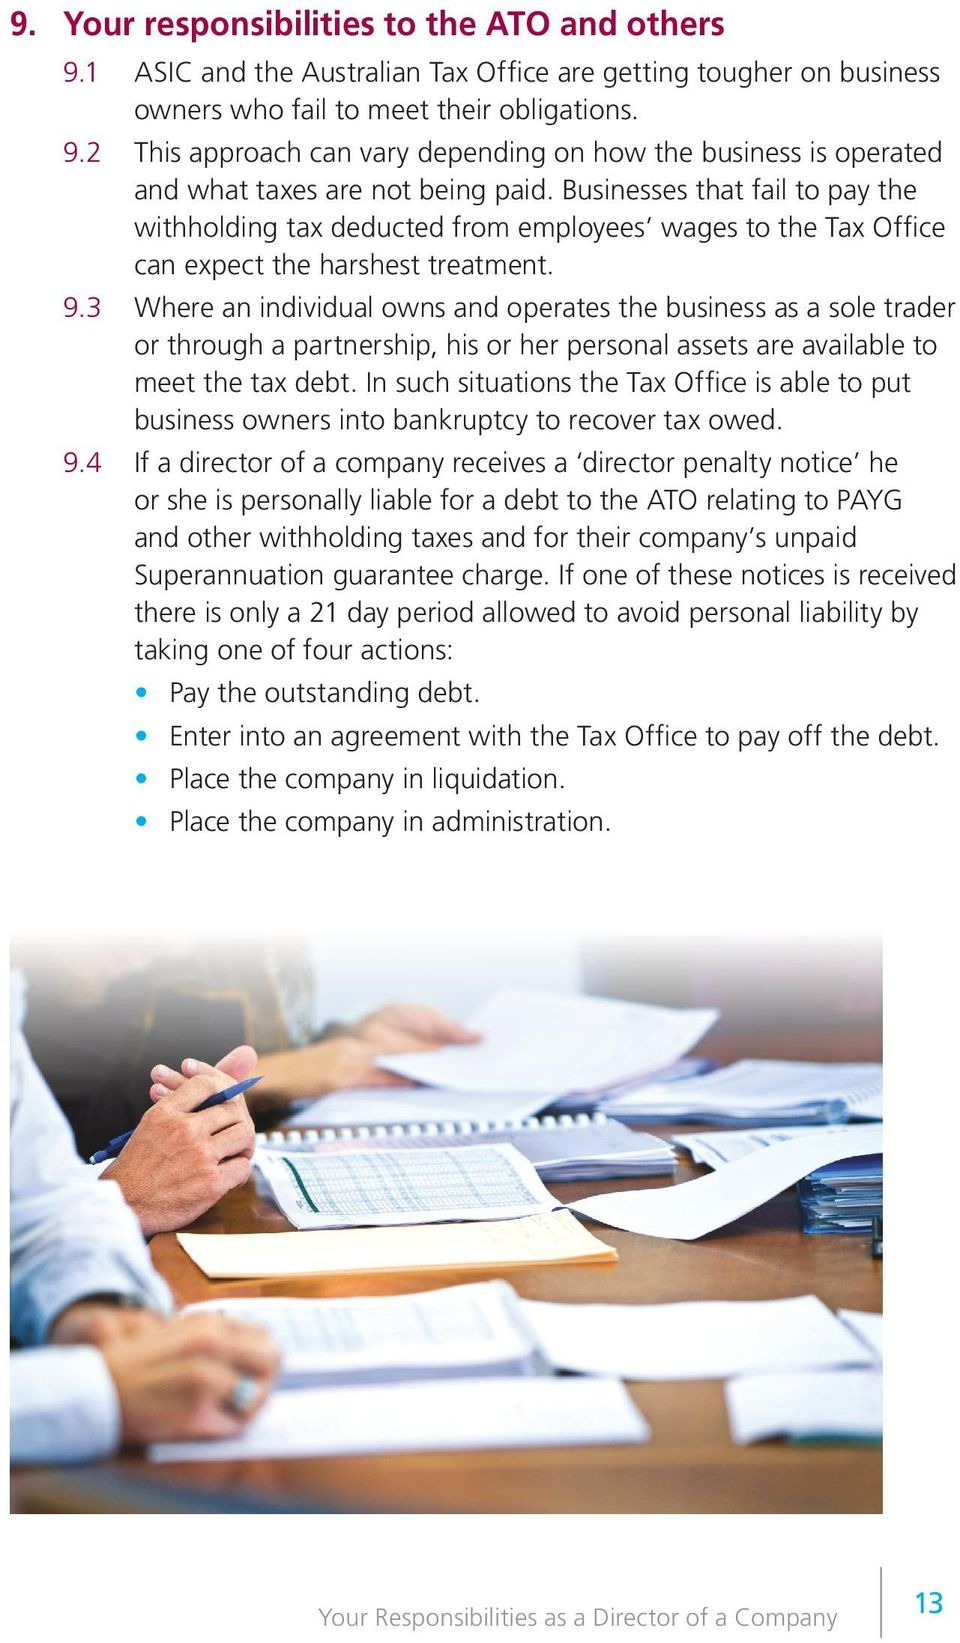 3 Where an individual owns and operates the business as a sole trader or through a partnership, his or her personal assets are available to meet the tax debt.